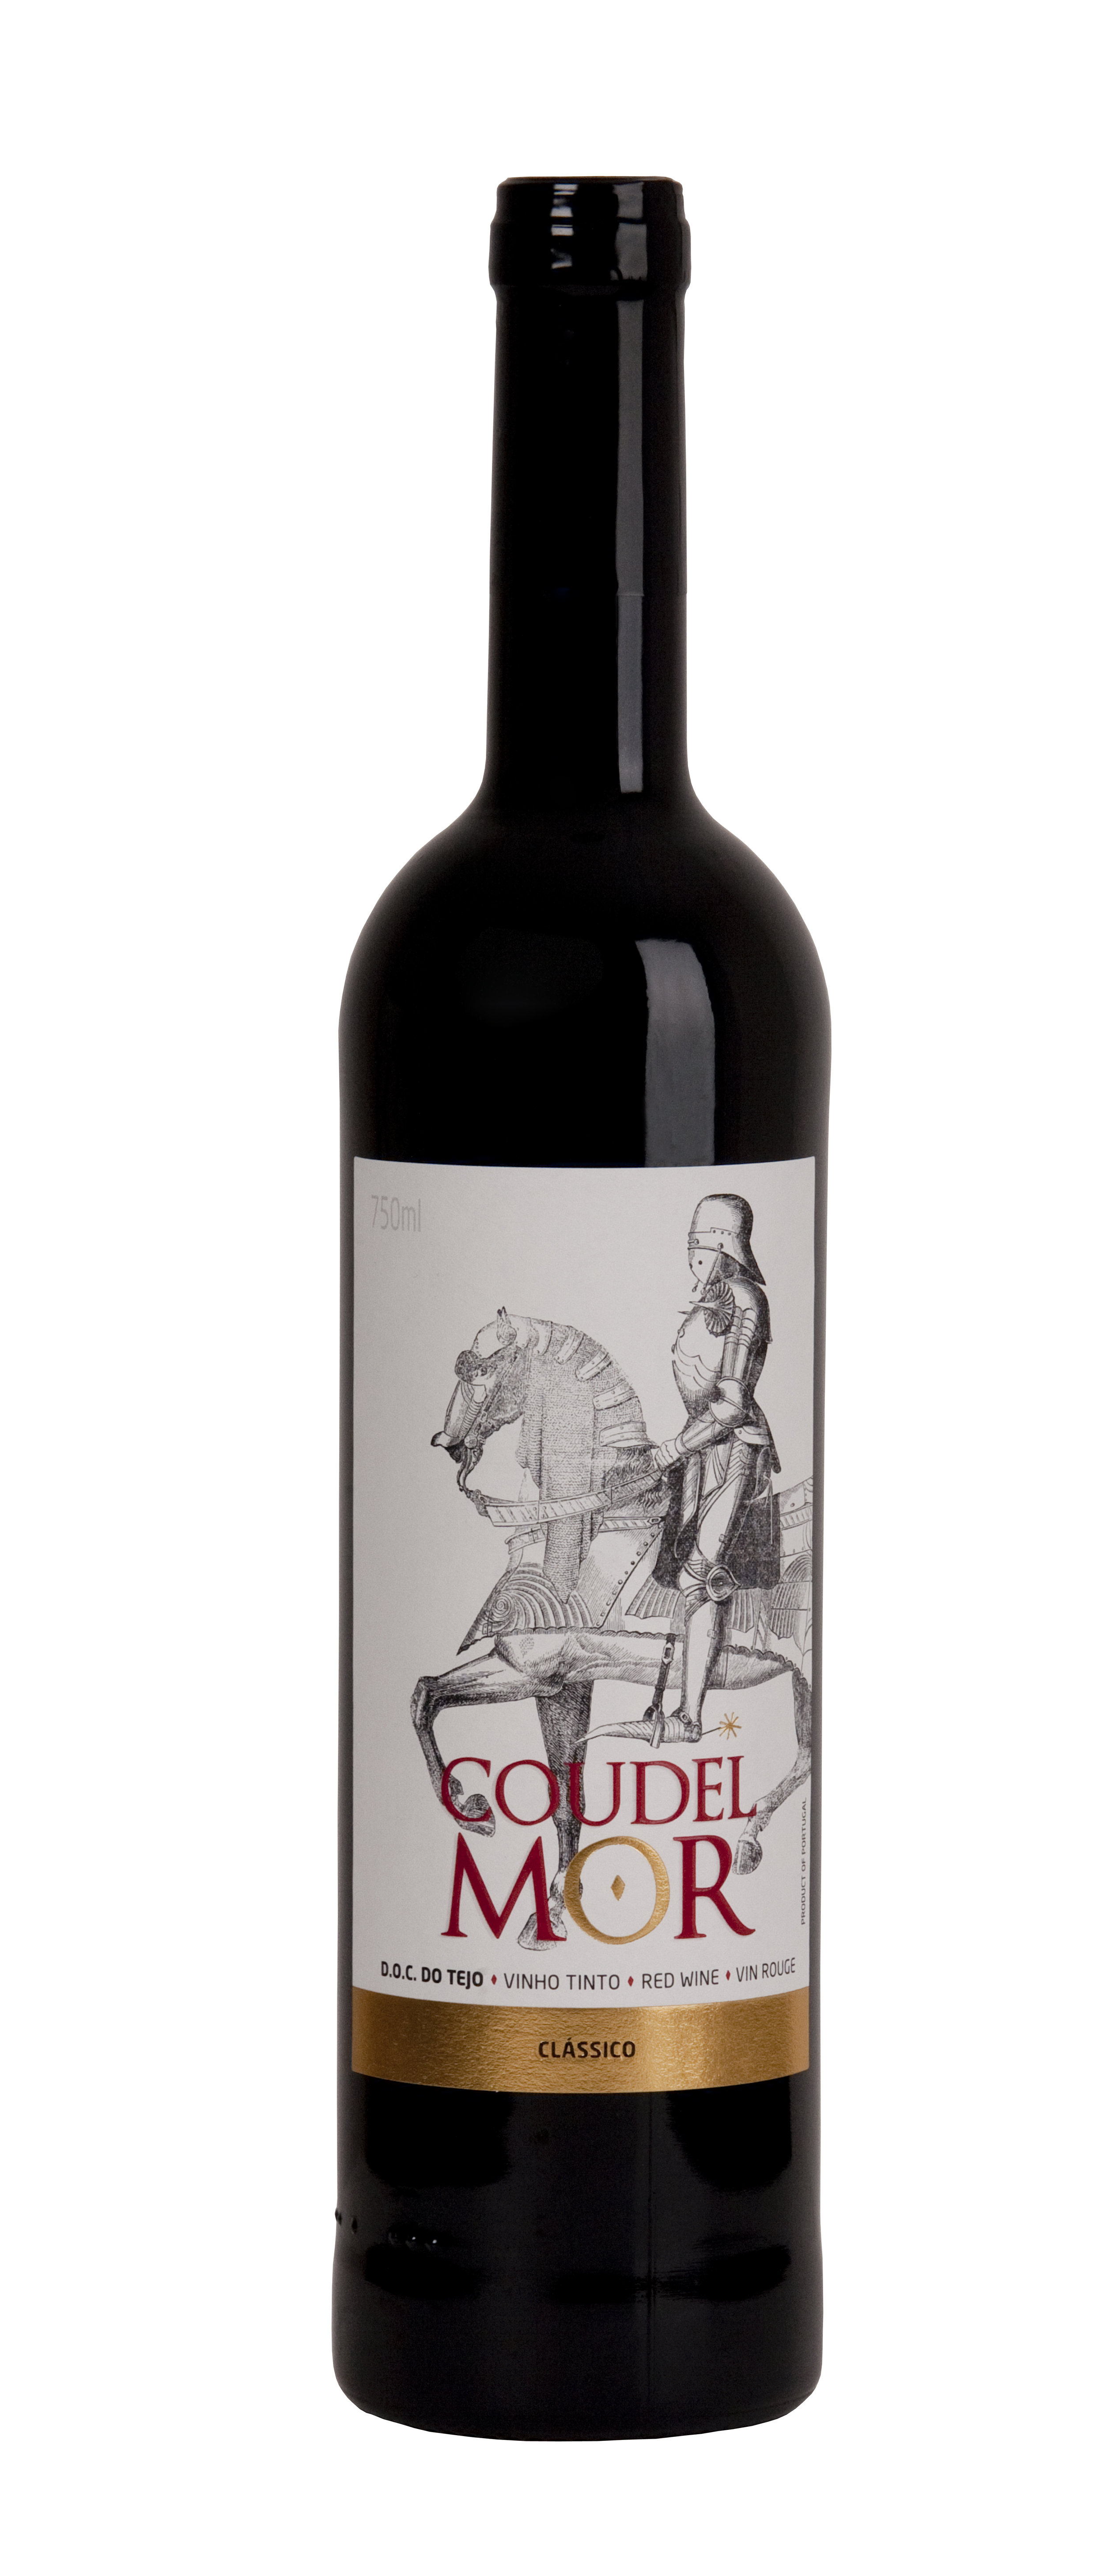 Copy of COUDEL MOR CLASSIC RED